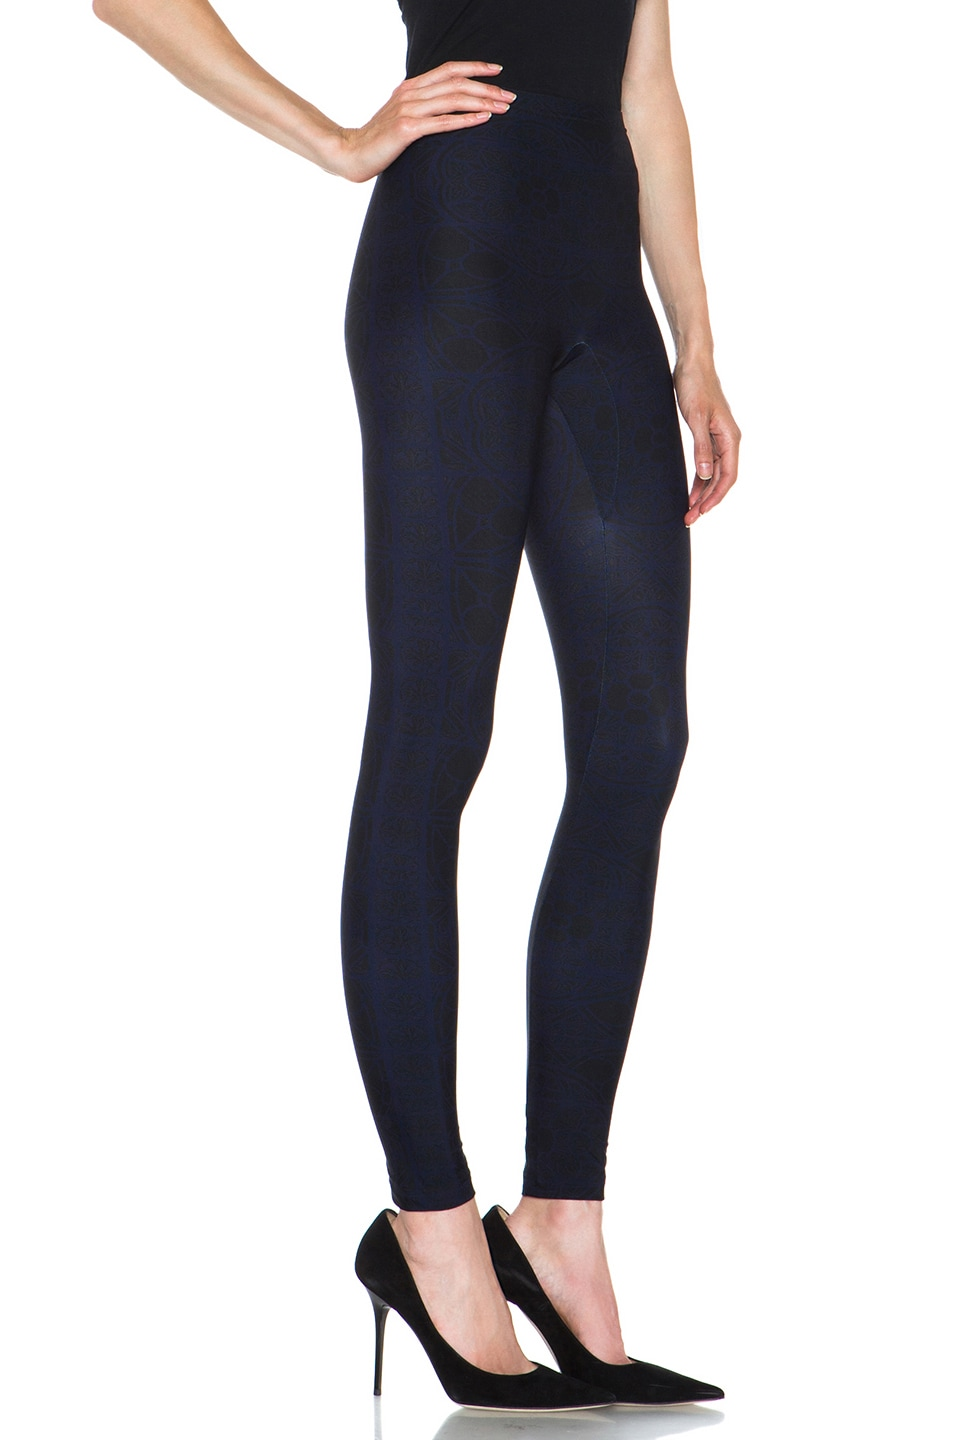 Image 3 of Alexander McQueen Stained Glass Print Nylon-Blend Legging in Navy & Black